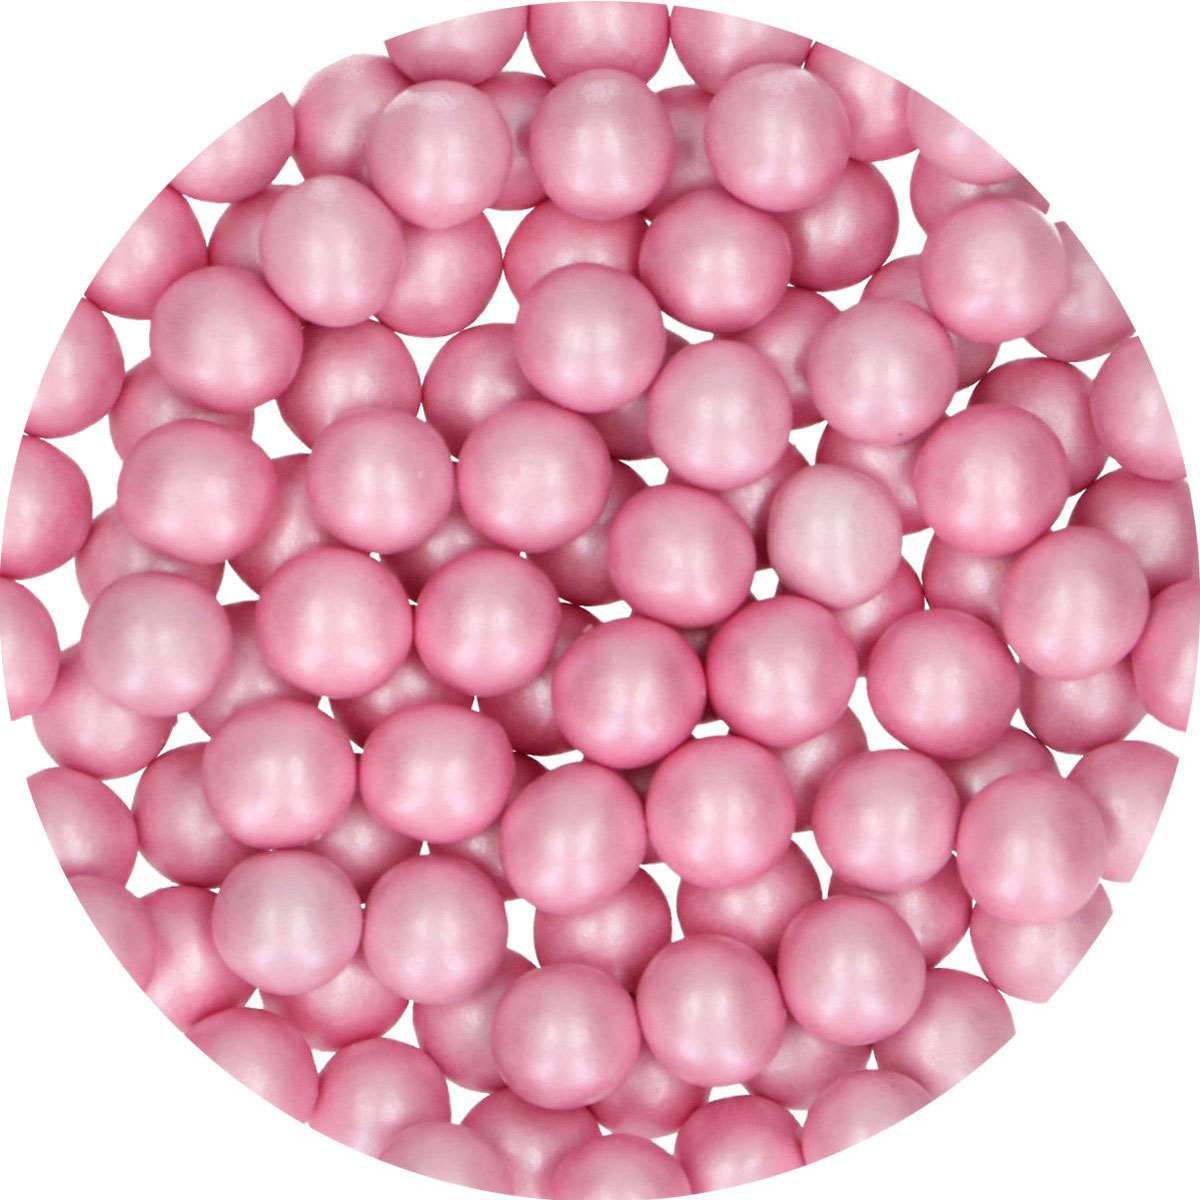 FunCakes Candy Choco Pearls Large Pink 70g